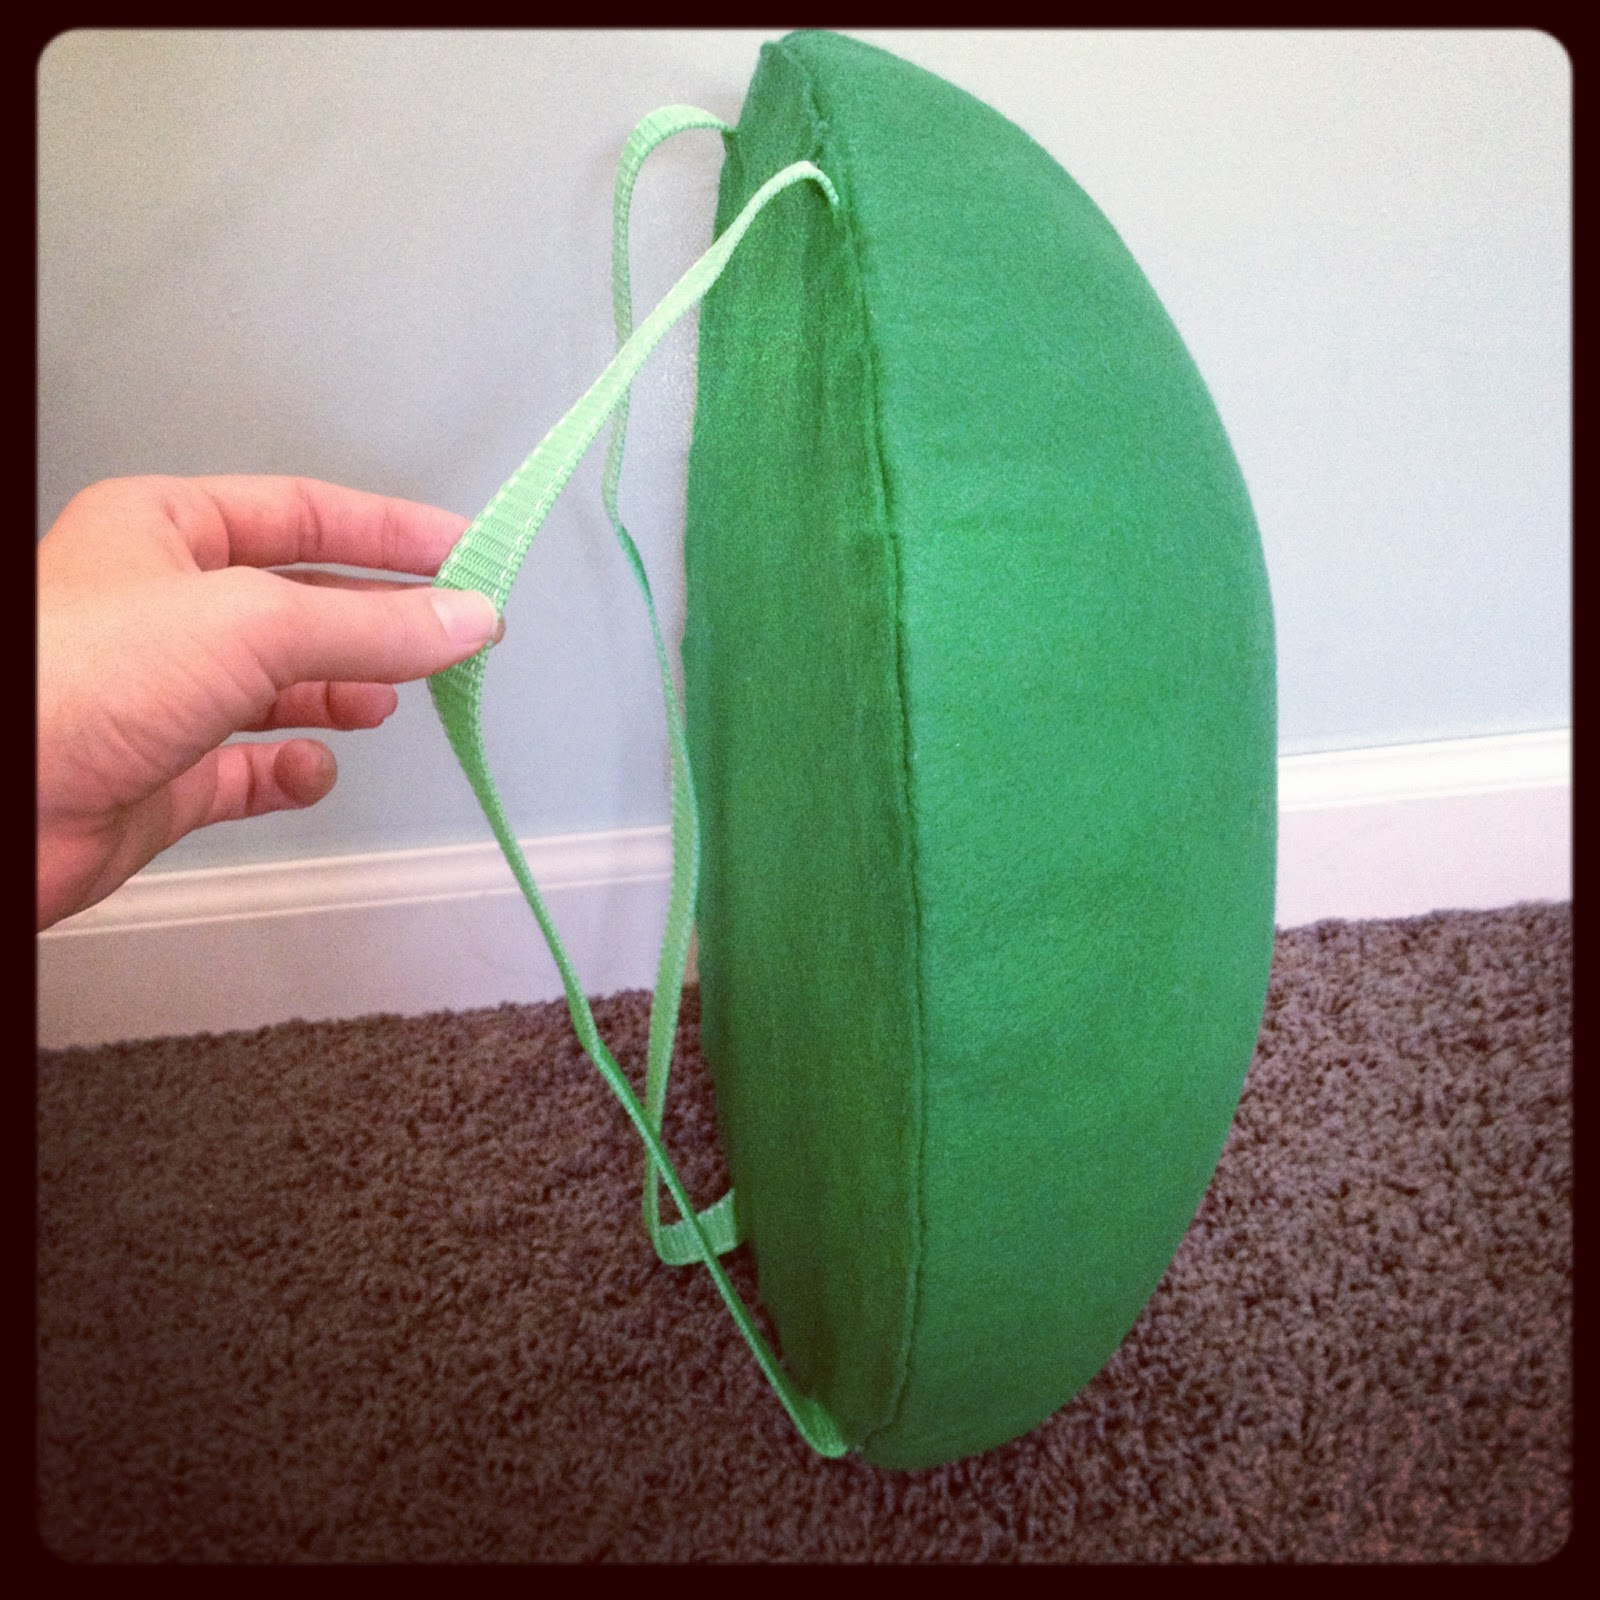 The almost perfectionist homemade turtle costume solutioingenieria Gallery